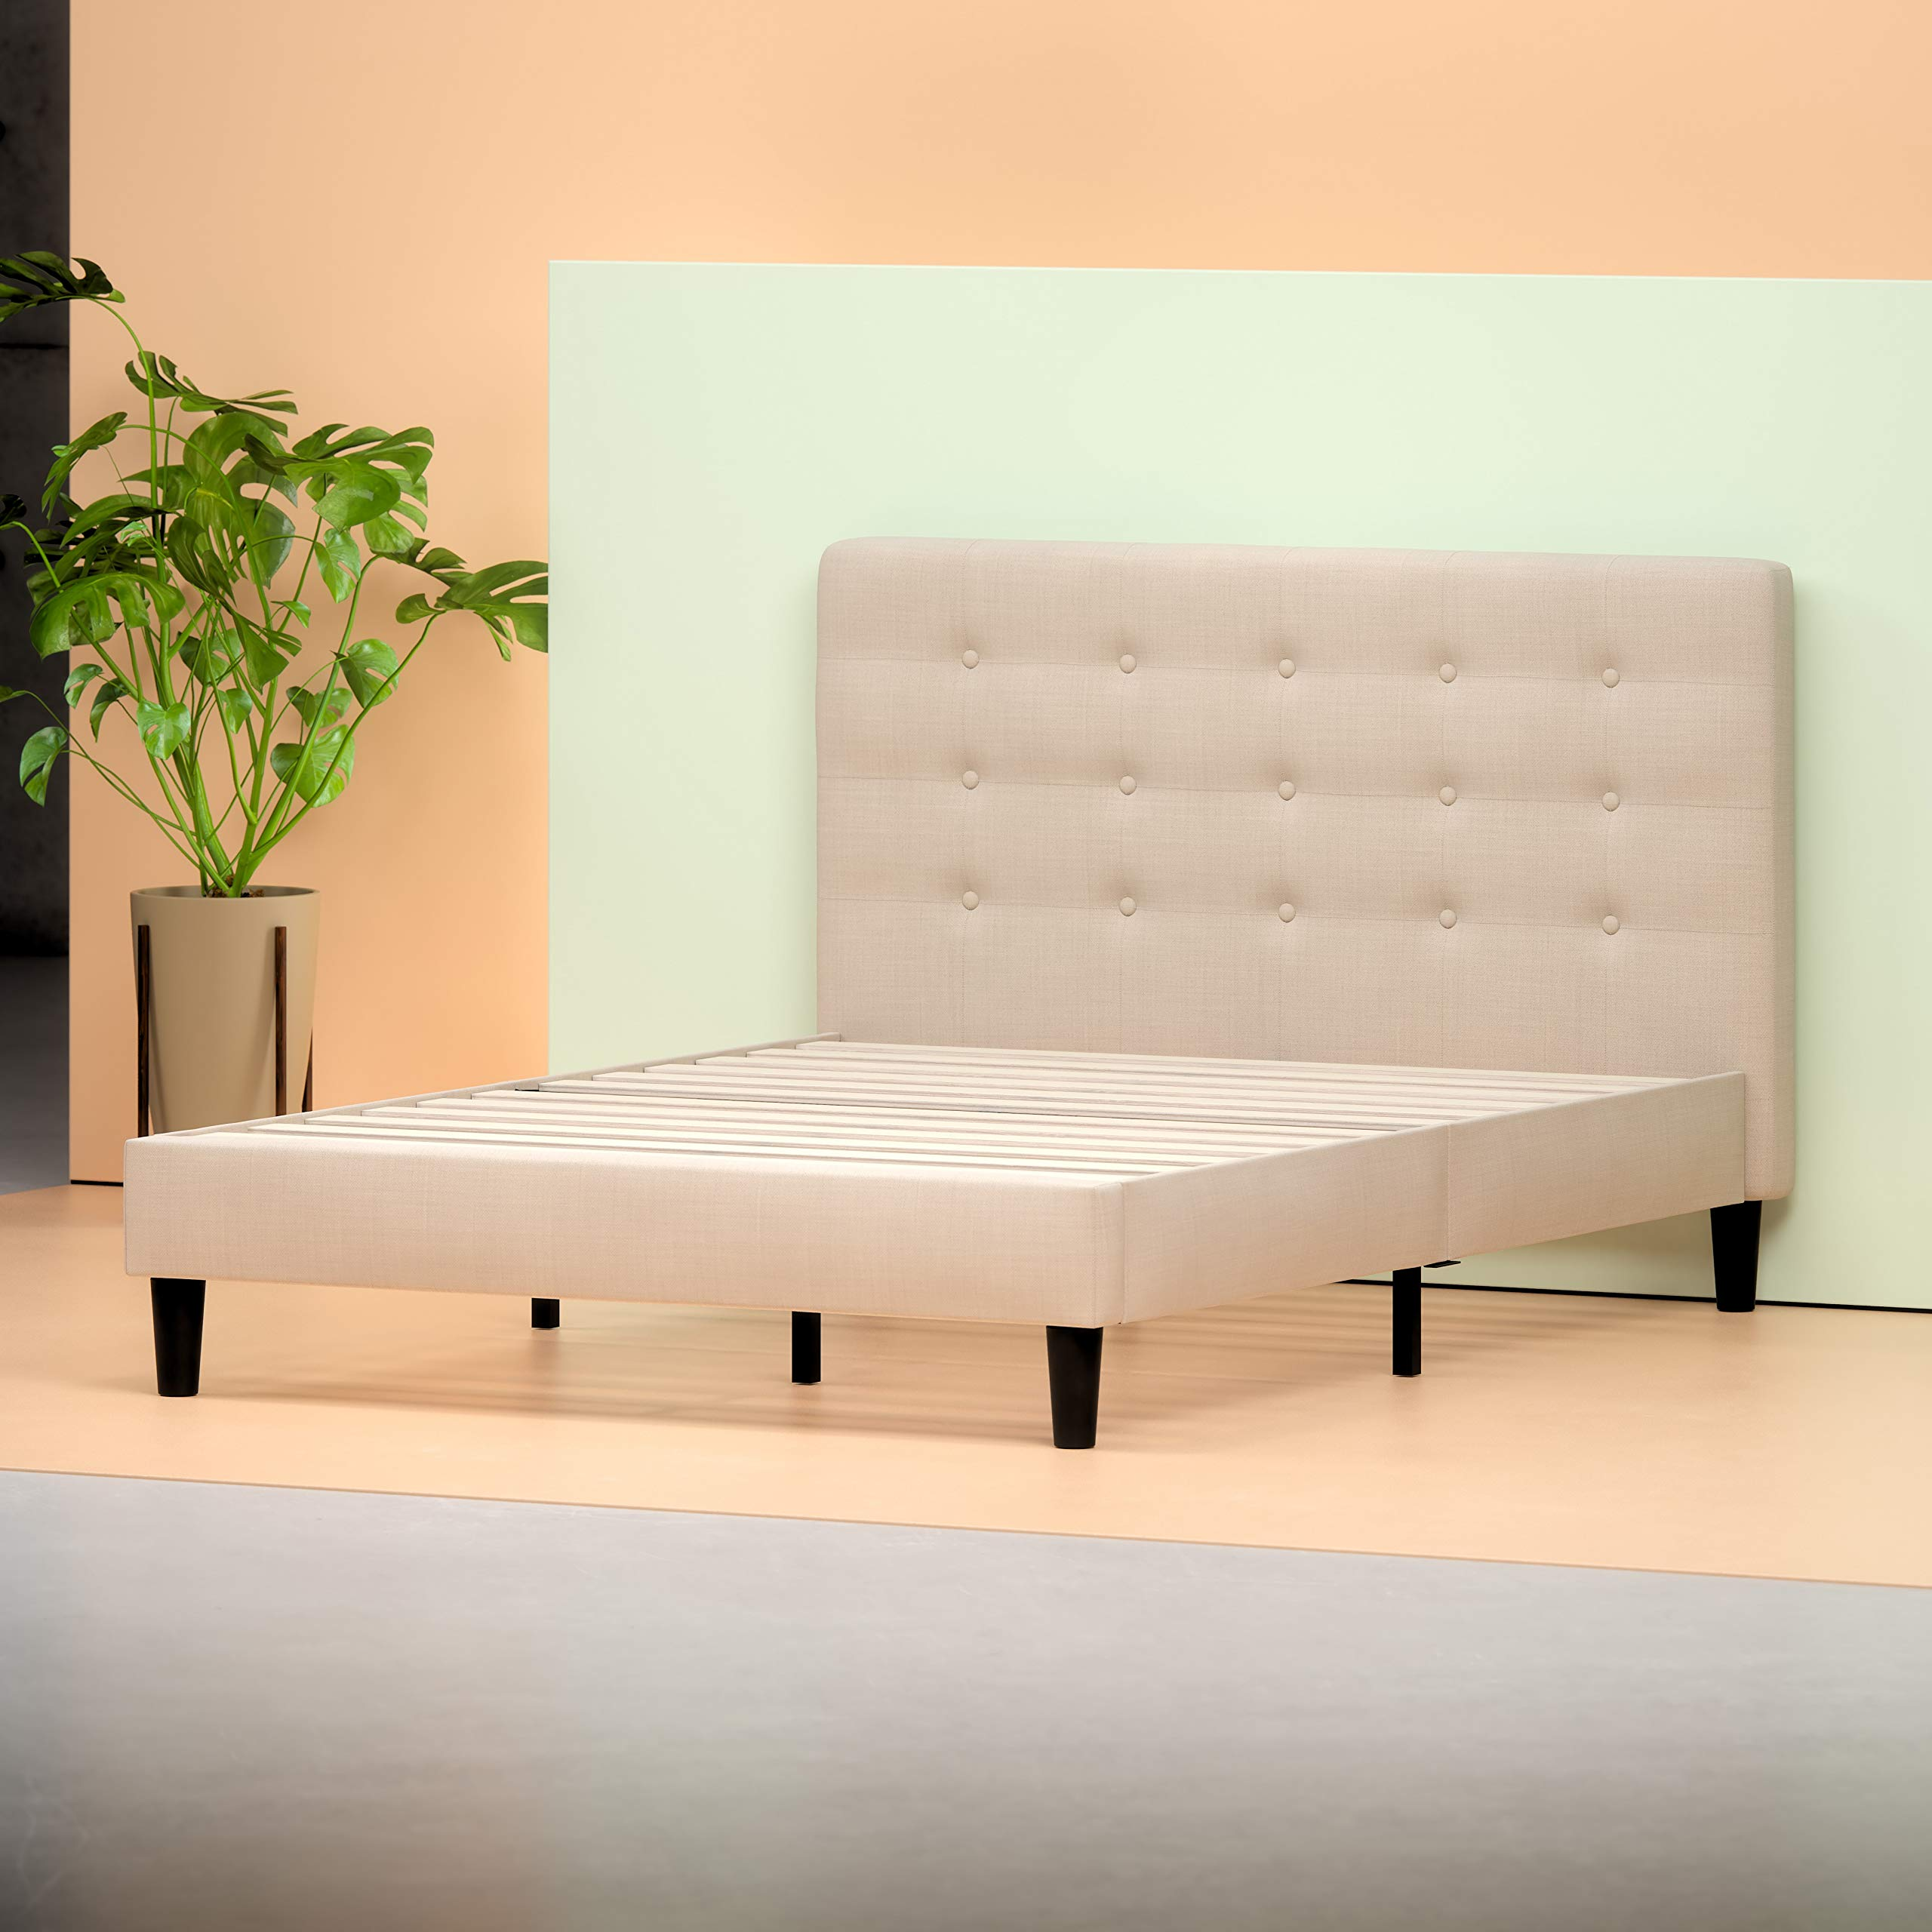 Zinus Ibidun Upholstered Button Tufted Platform Bed / Mattress Foundation / Easy Assembly / Strong Wood Slat Support, Queen